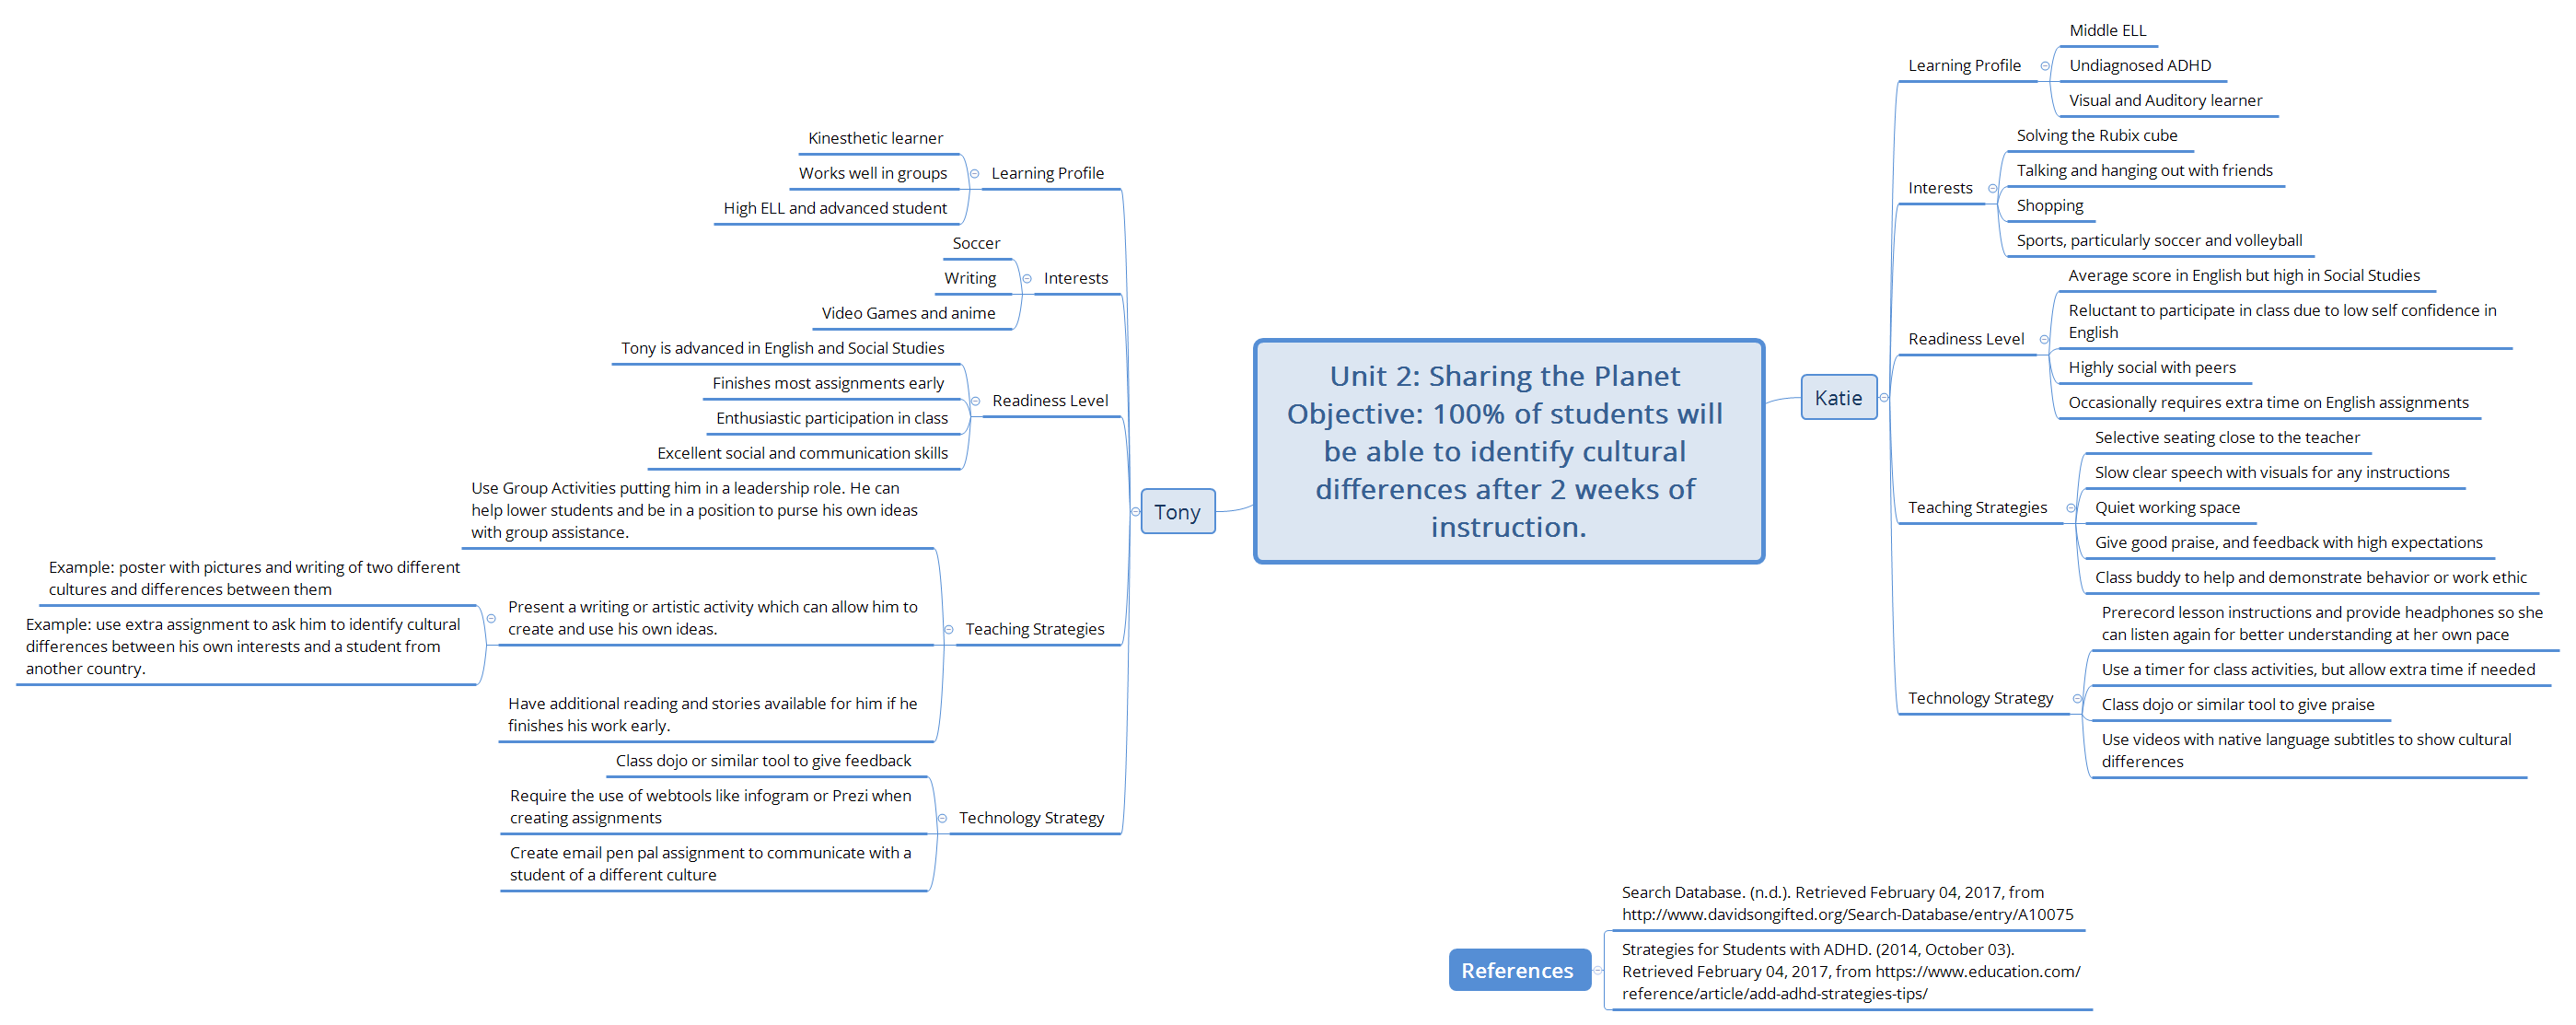 Differentiationg Lesson Plans - XMind - Mind Mapping Software